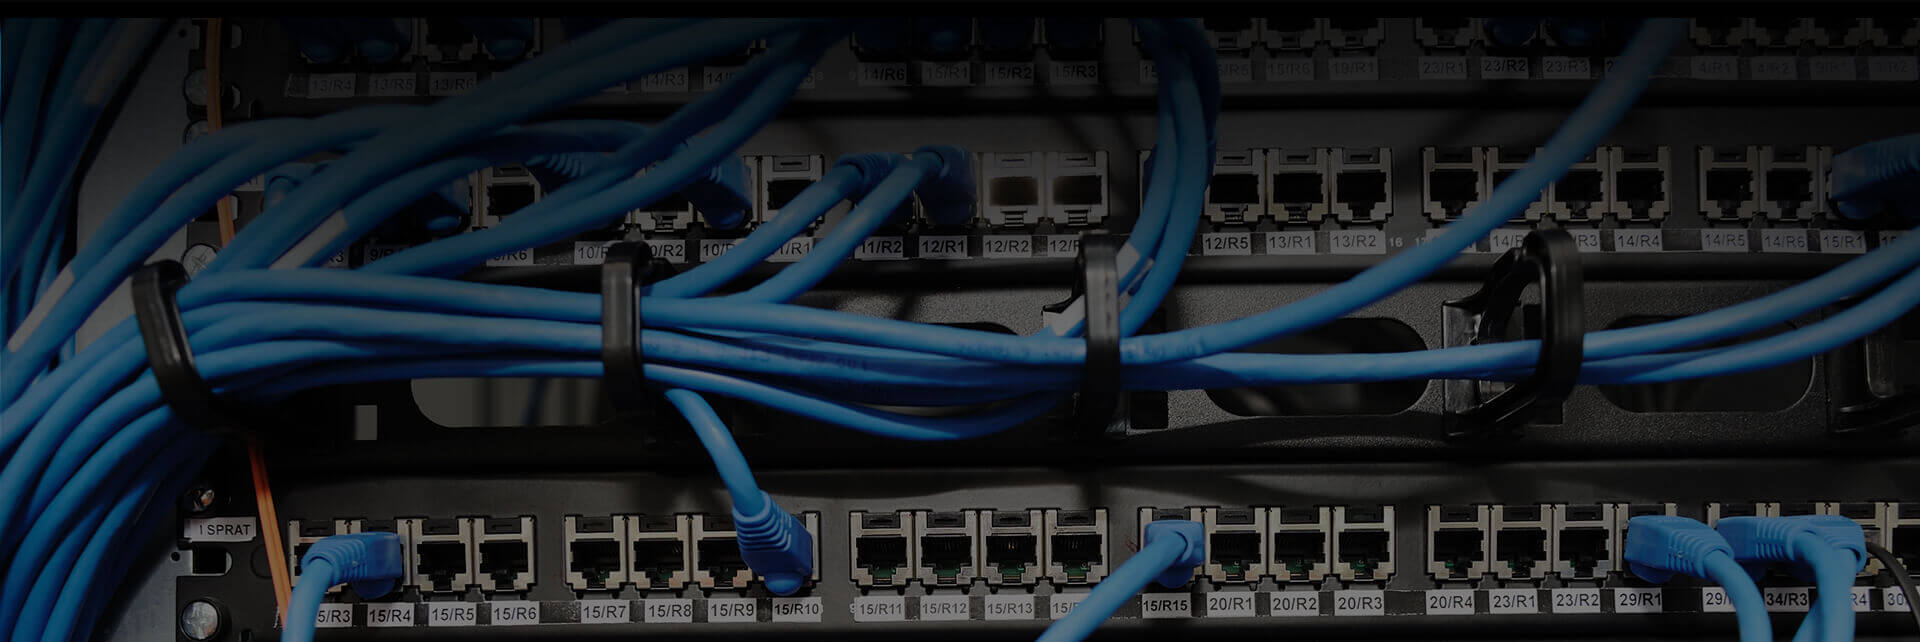 hight resolution of structured cabling and wiring services in new york city structured wiring forms the backbone of any low voltage project high